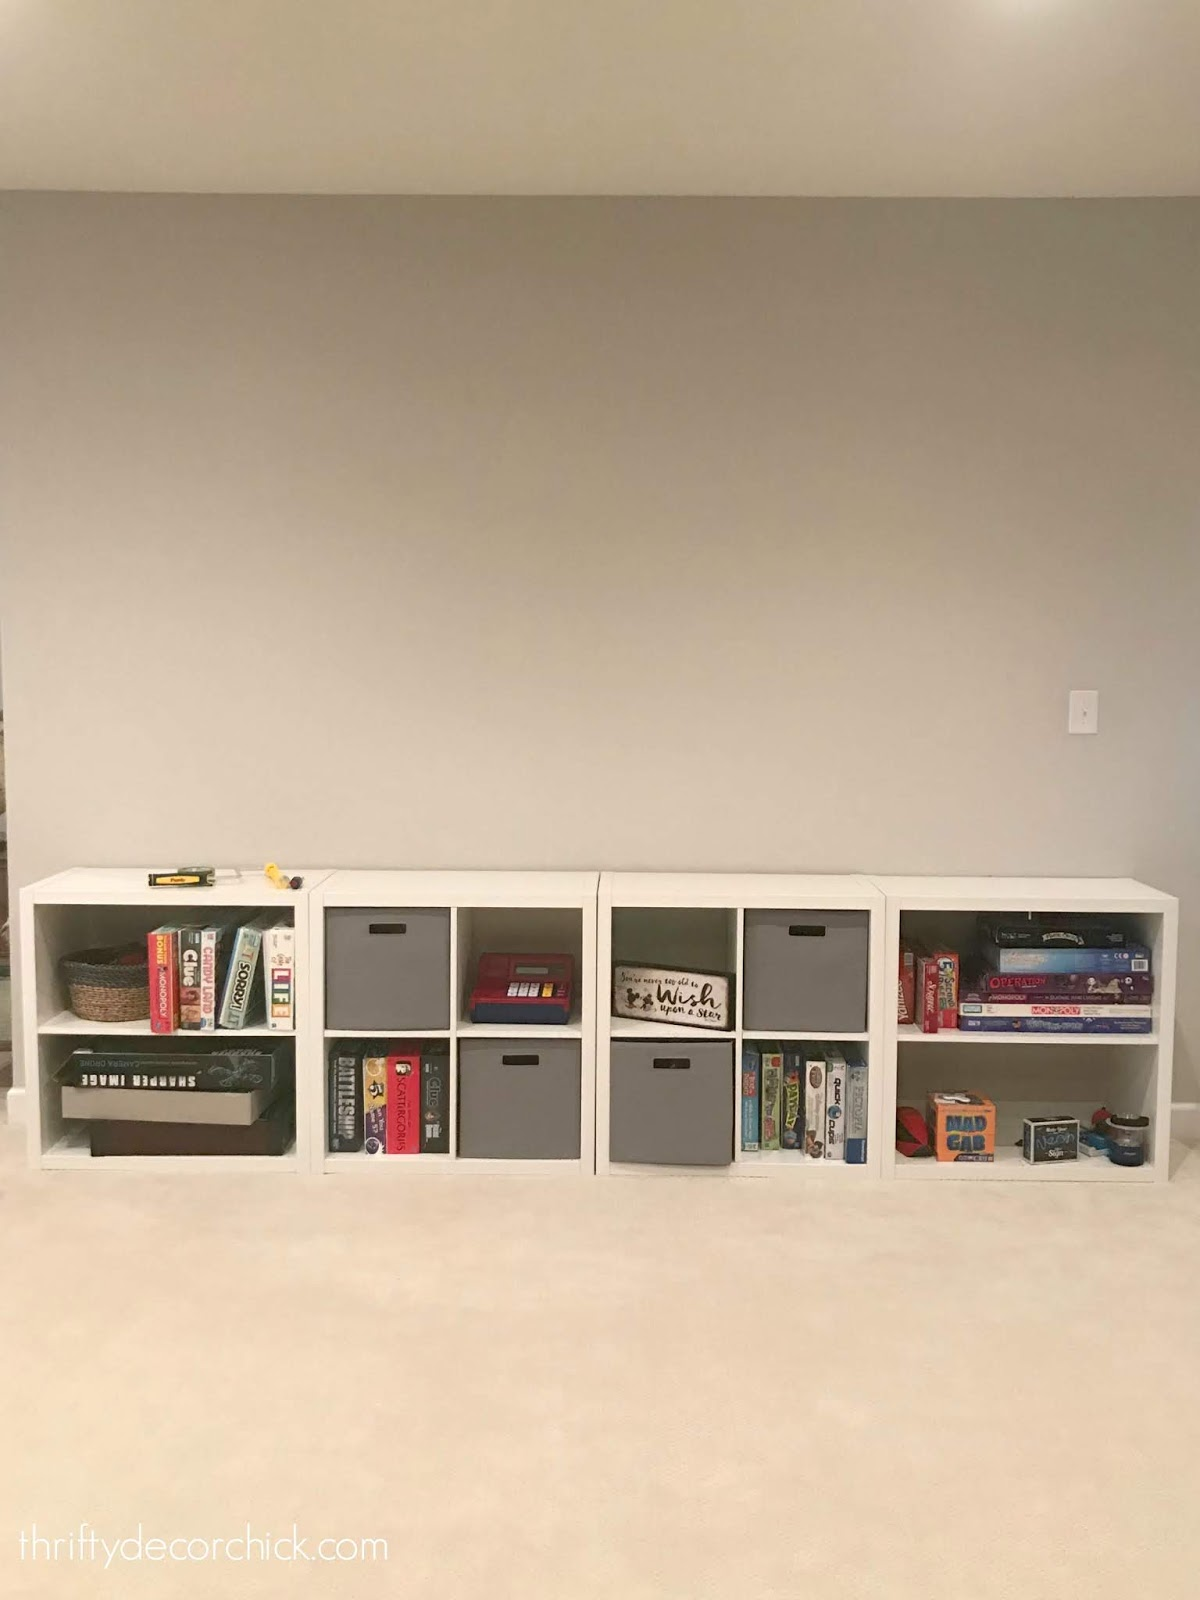 Square cubby storage for games and bins